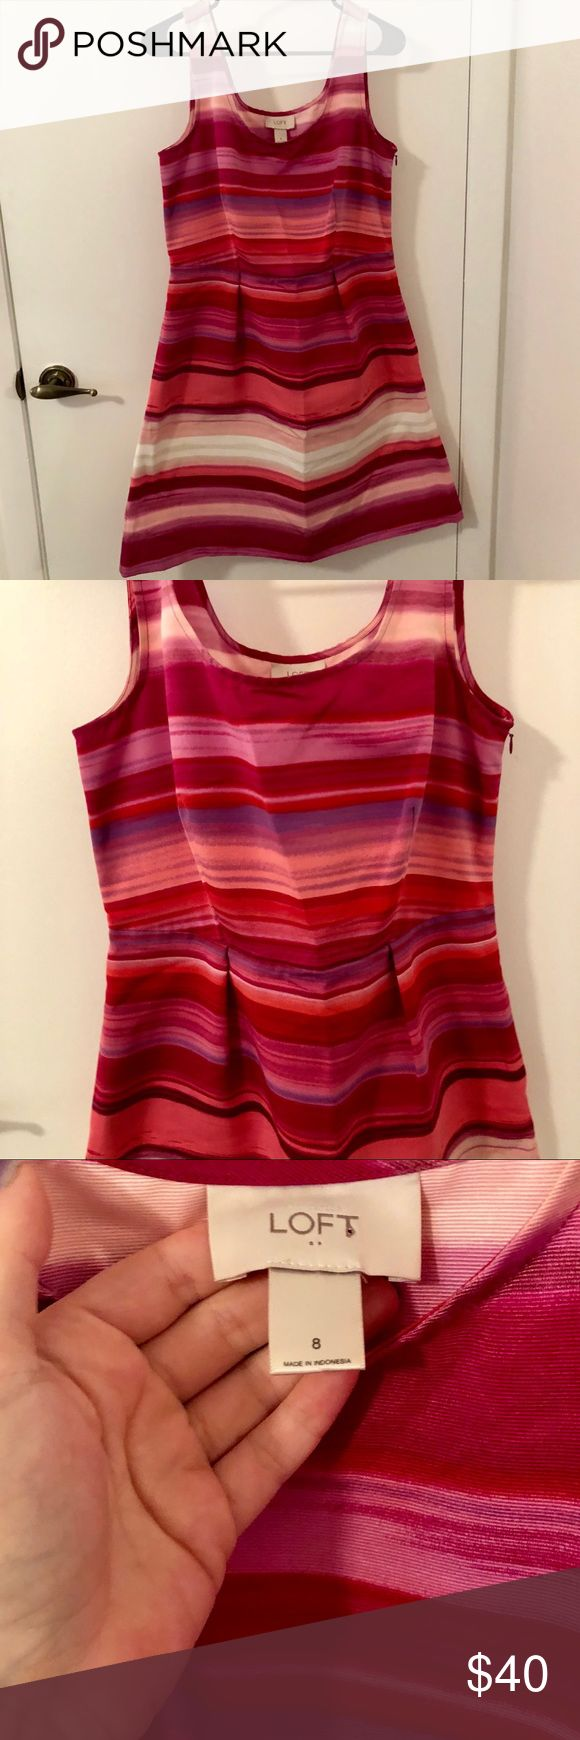 💖 Beautiful Ann Taylor Loft Dress Beautiful Ann Taylor Loft Dress with stripes in shades of pink and purple. Perfect for spring and summer! Excellent condition! LOFT Dresses